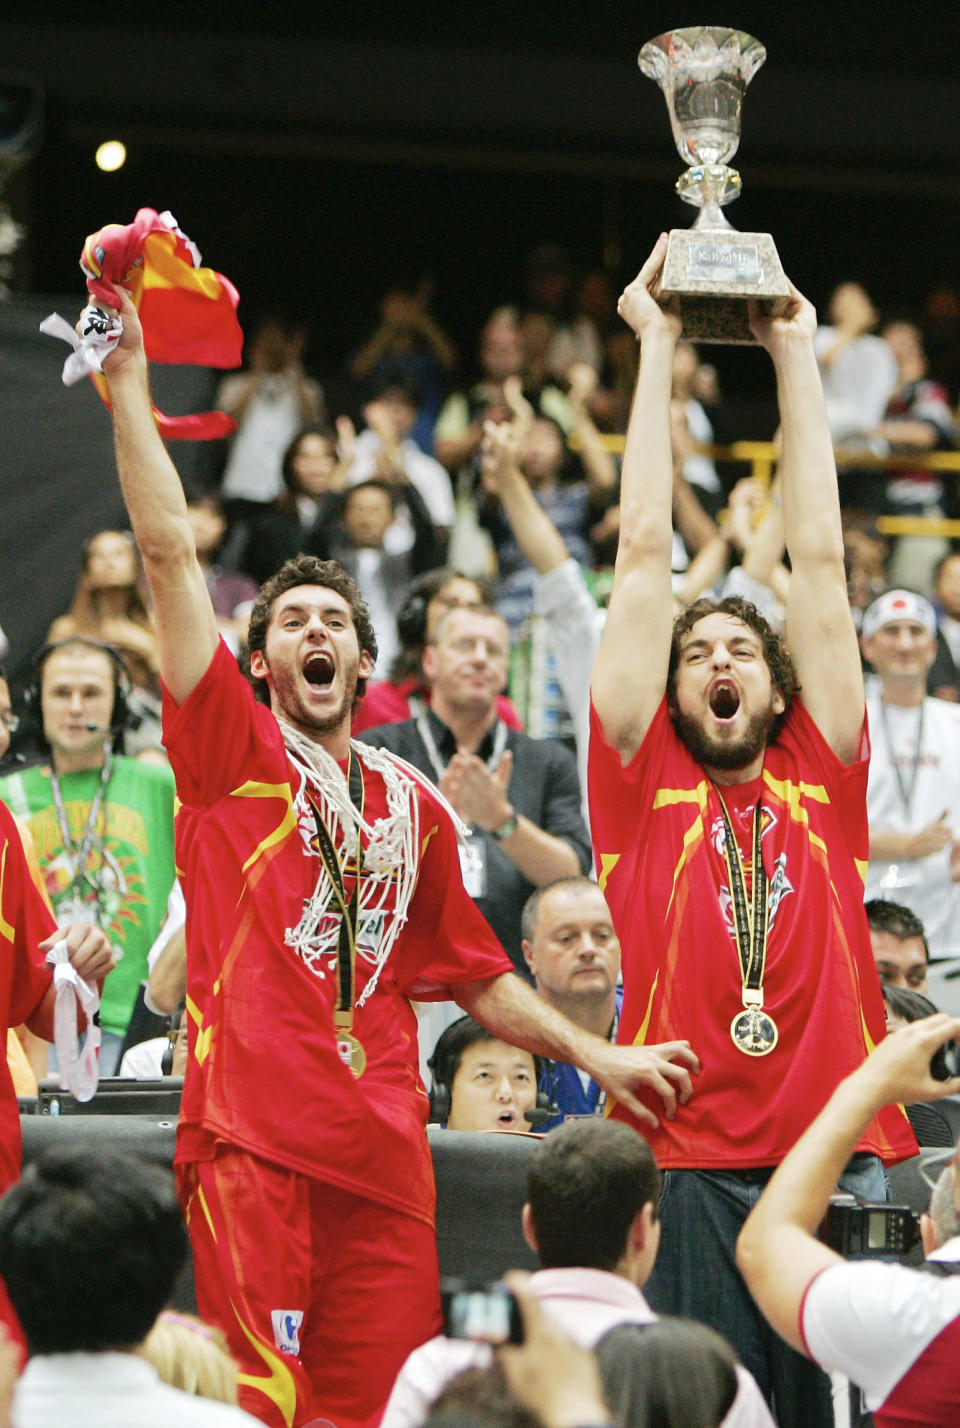 FILE - Spain's Pau Gasol, right, holds up the champion's trophy as teammate Rudy Fernandez waves a flag during ceremonies at the world basketball championships in Saitama, Japan, in this Sept. 3, 2006, file photo. Pau Gasol announced his retirement from basketball on Tuesday, Oct. 5, 2021, ending a career that lasted more than two decades and earned him two NBA titles and a world championship gold with Spain's national team. (AP Photo/Mark J. Terrill, File)